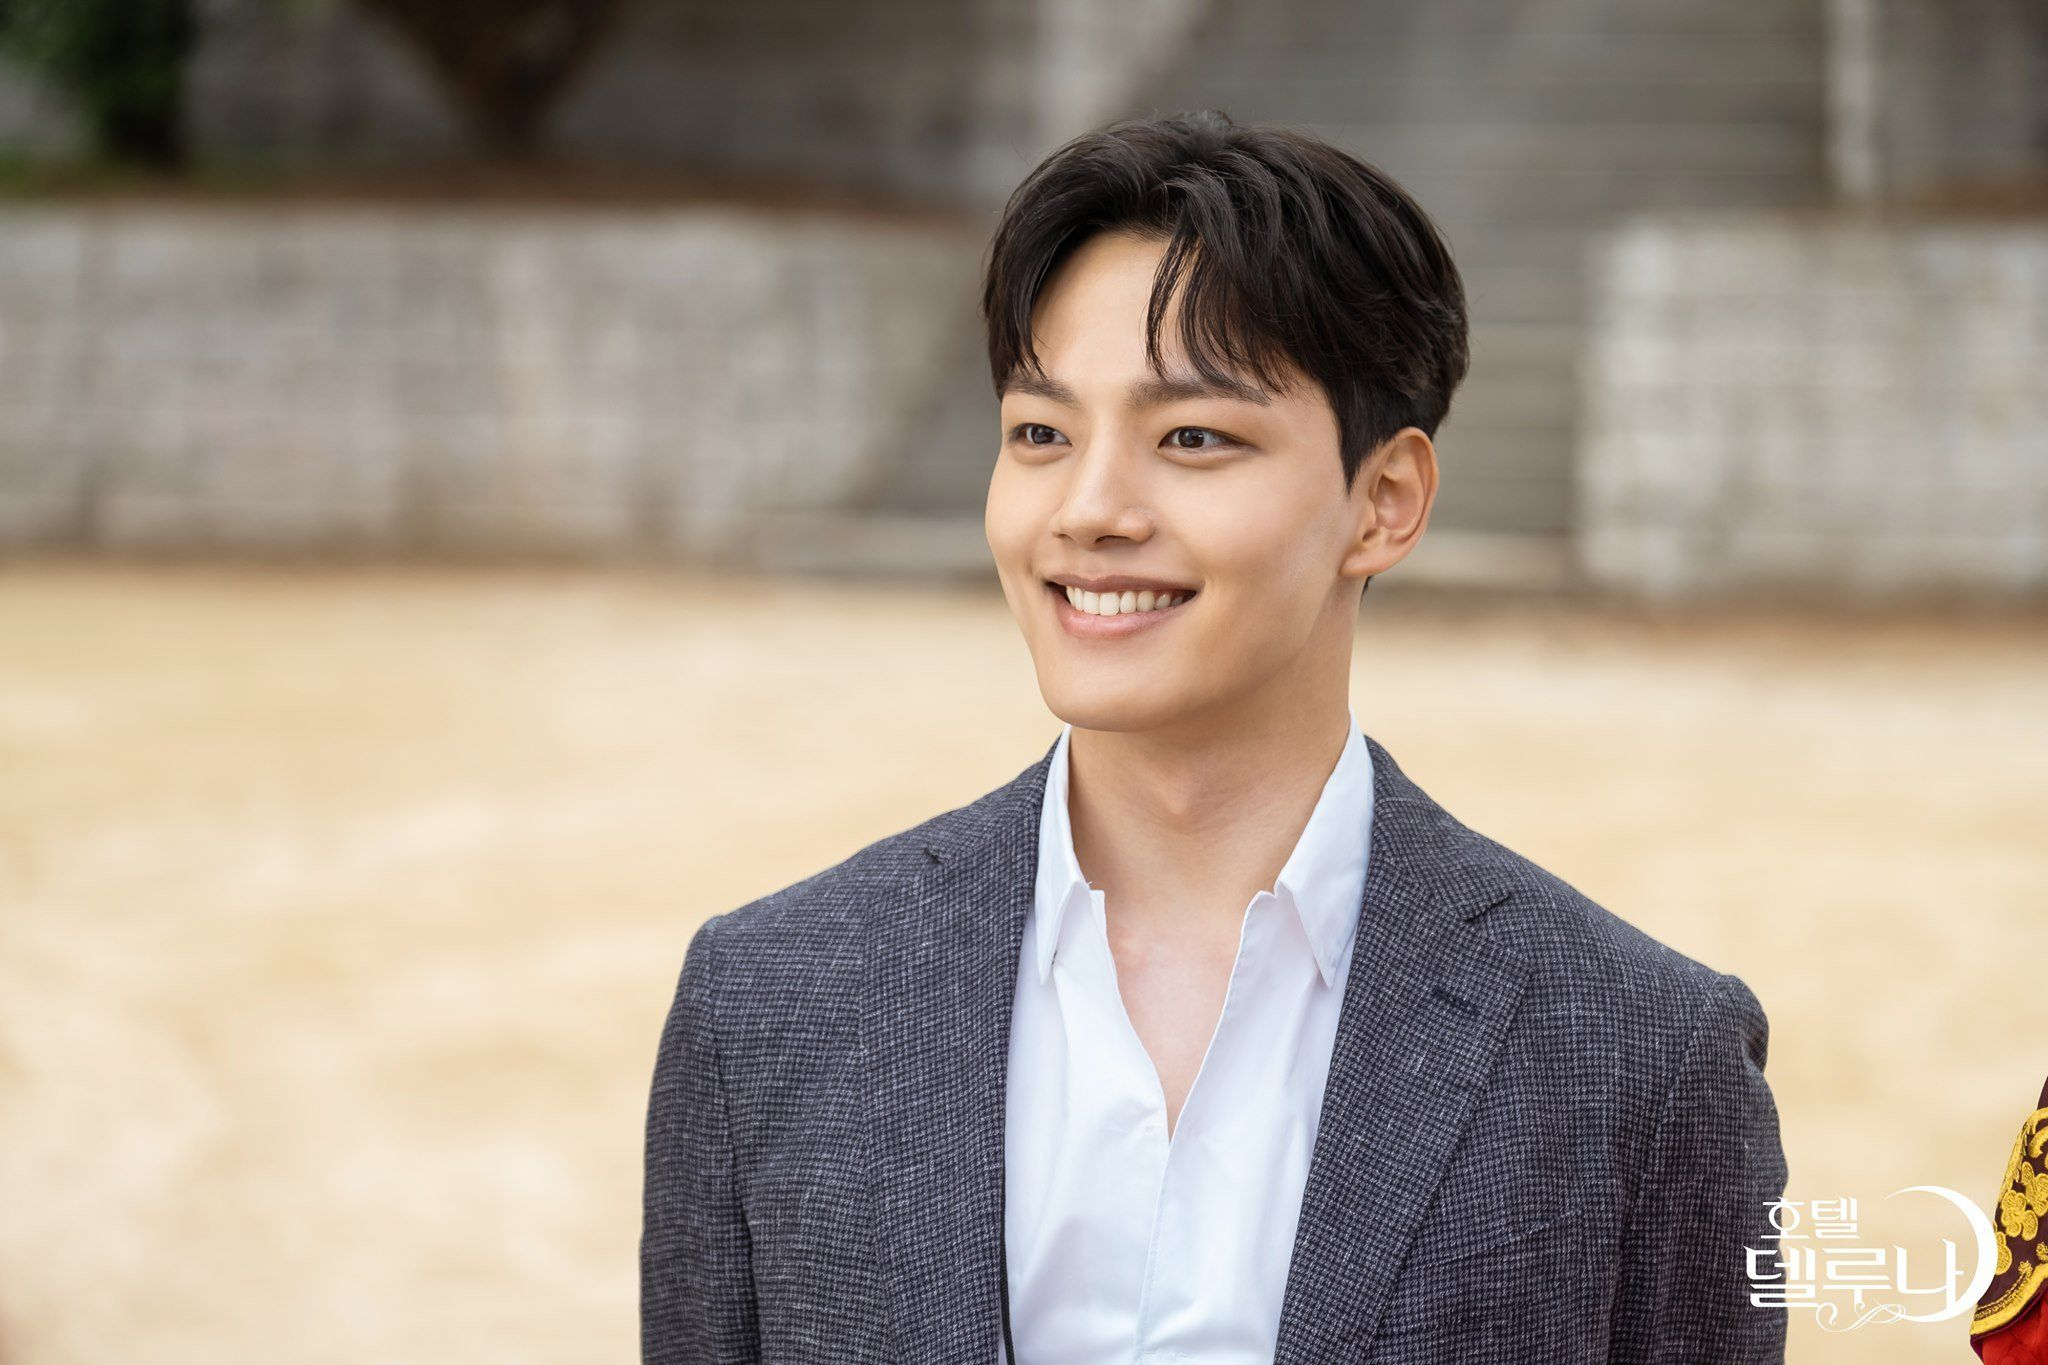 Yeo Jin Goo to Make Special Appearance at 'Hotel Del Luna' Star Tour in Singapore on 23 September